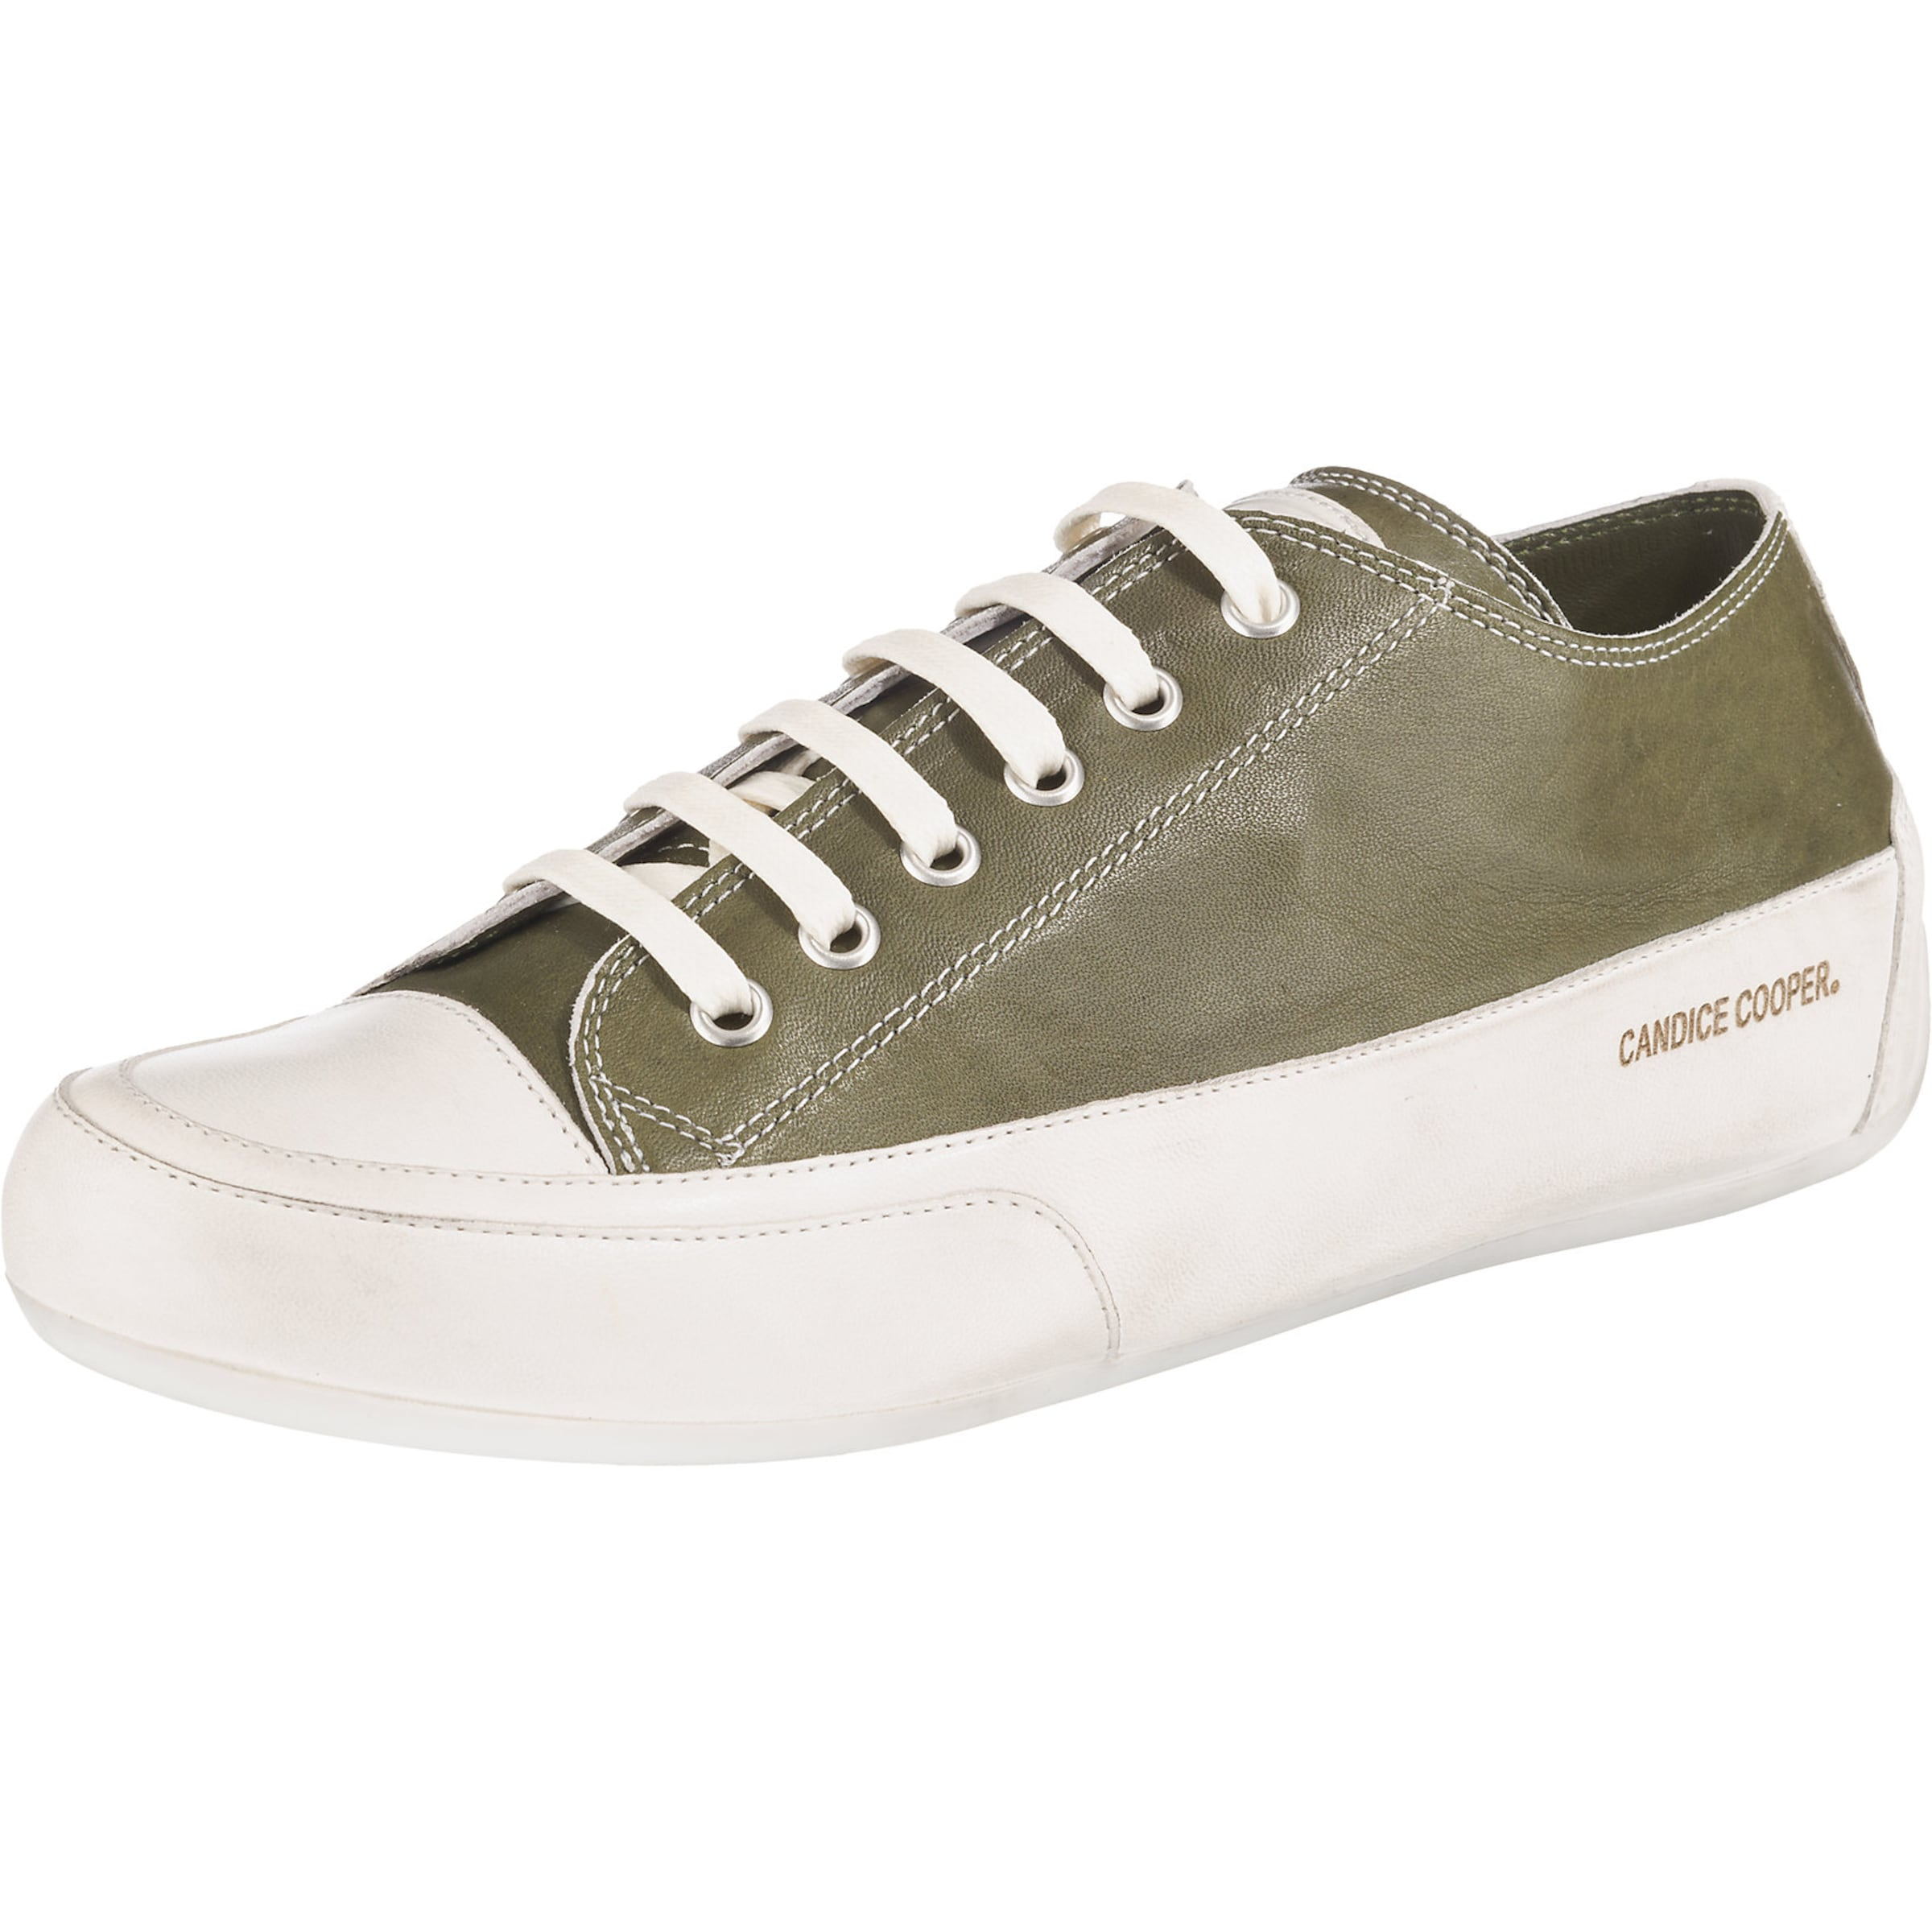 Low Cooper Sneakers Oliv Candice In eWdxBrCo